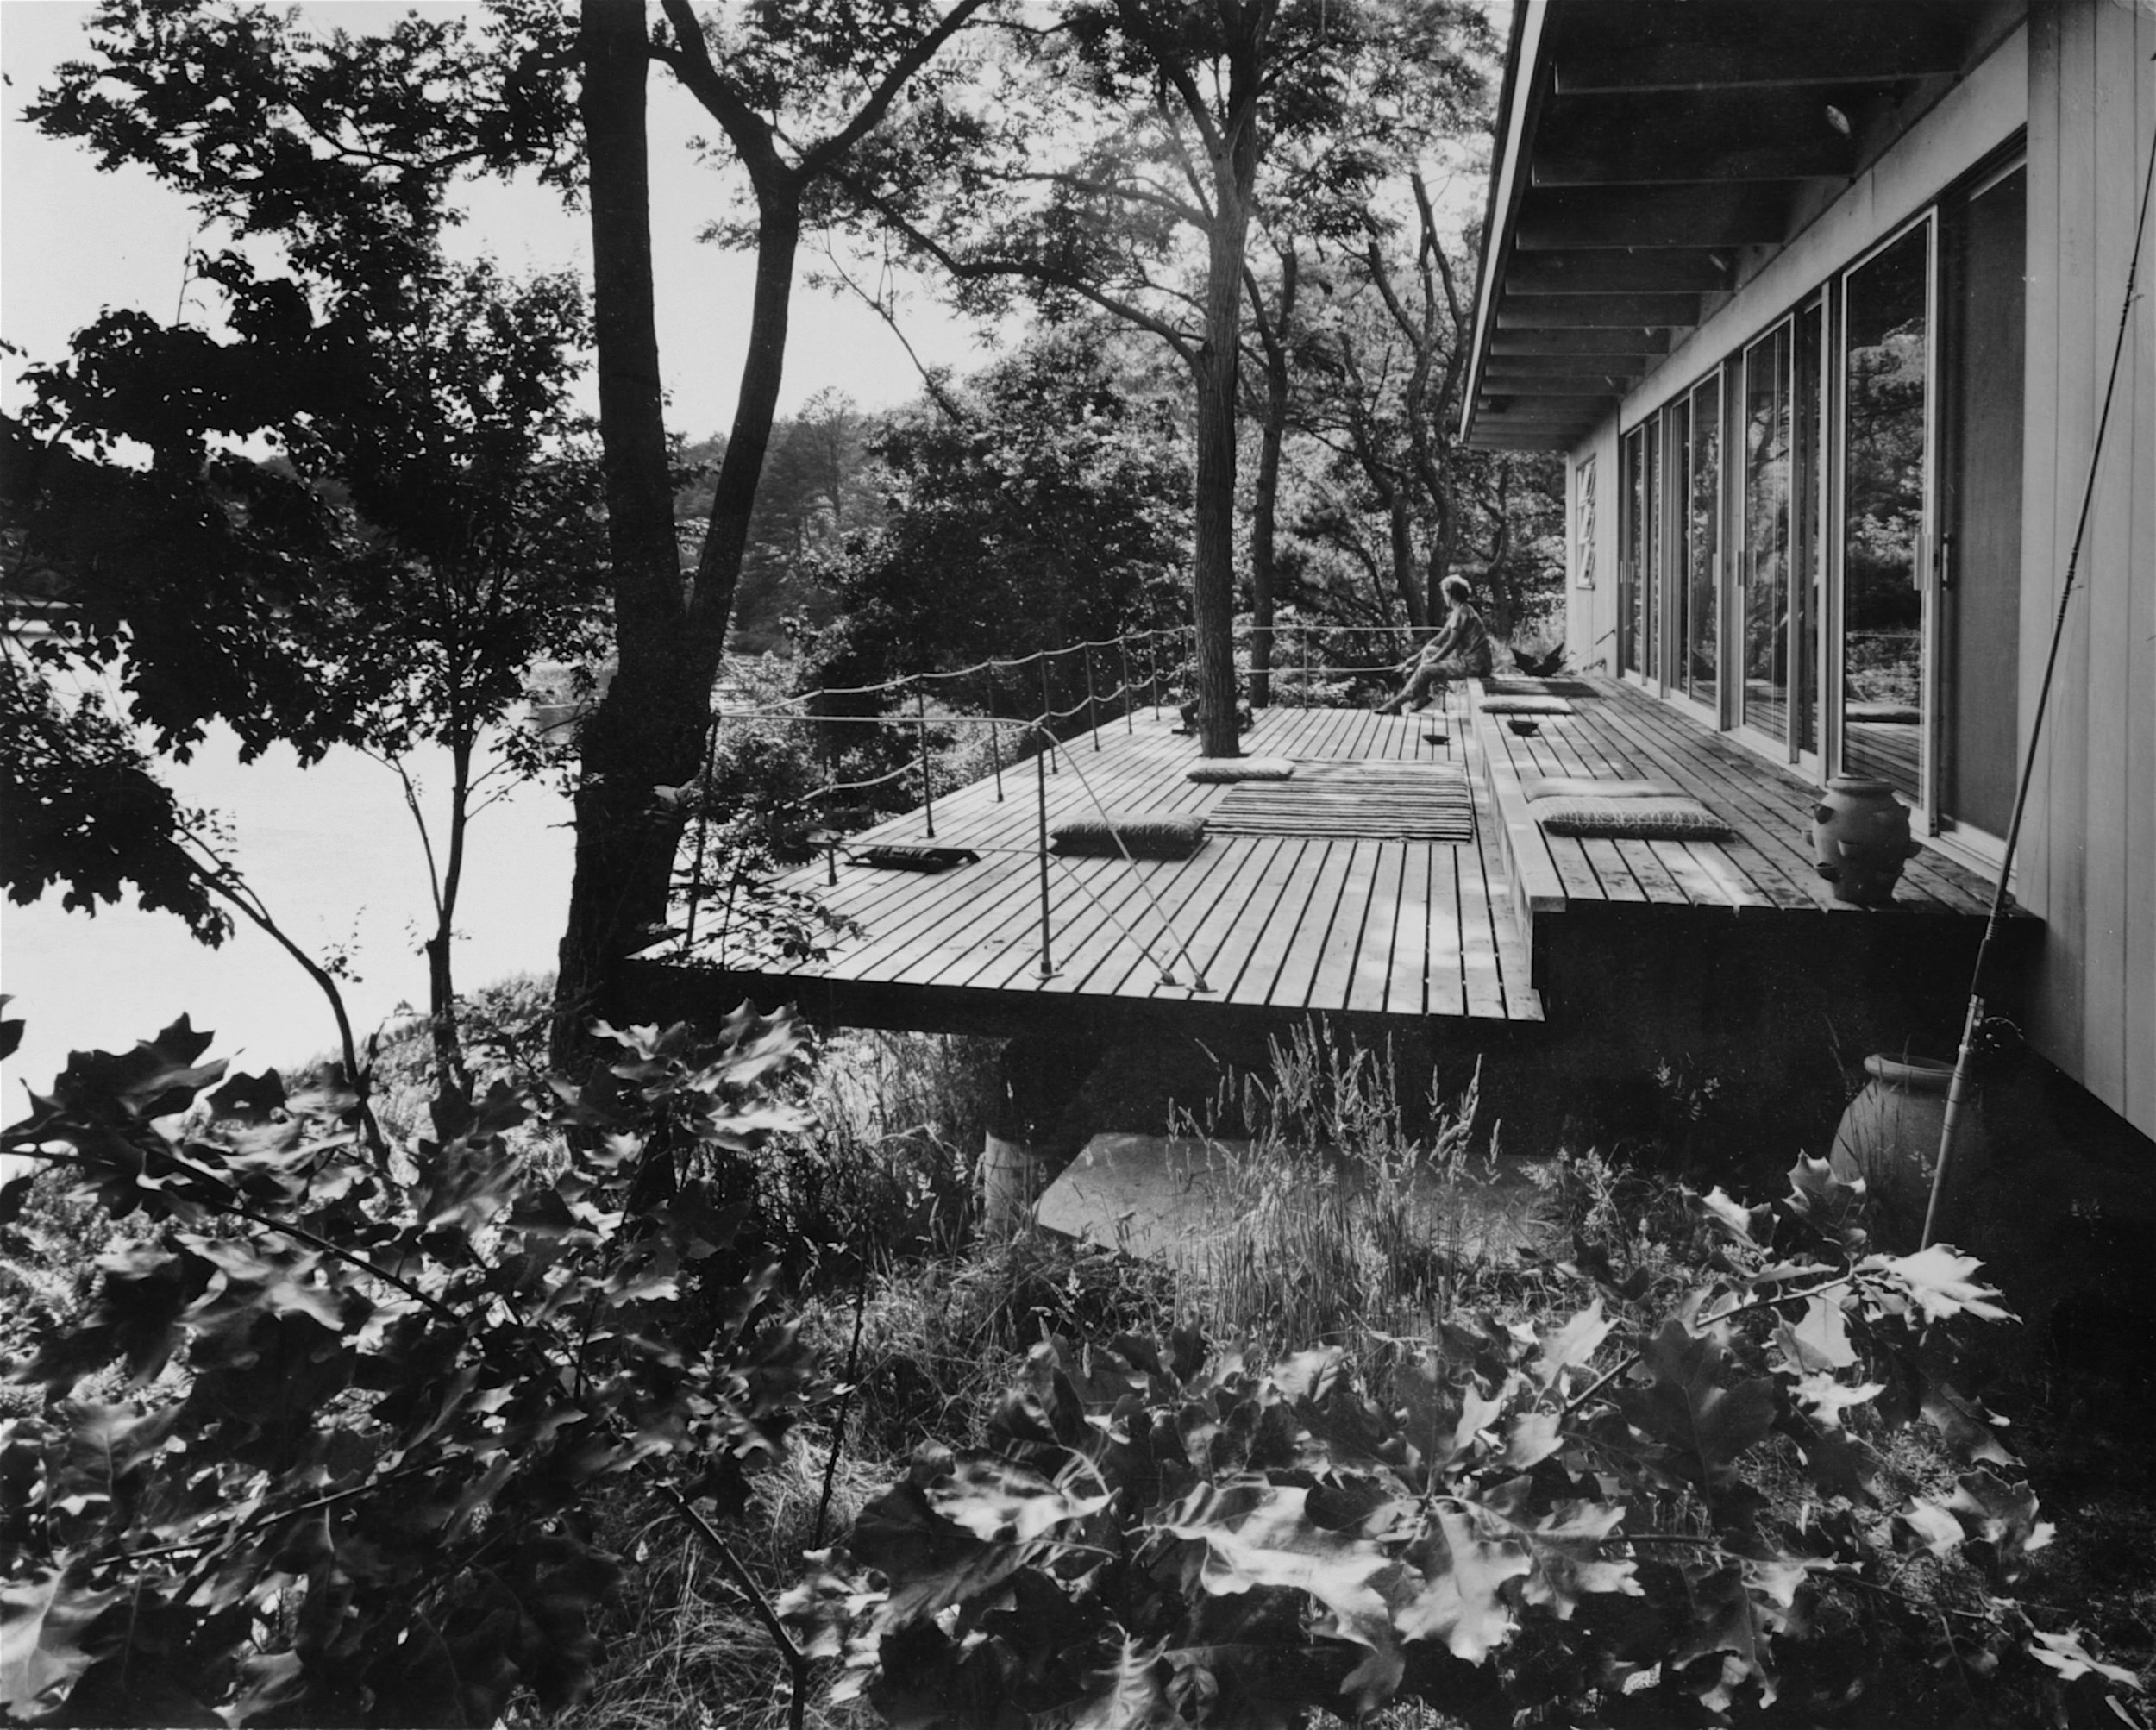 Olav Hammarstrom, Saarinen House (1960, for Lily Swann Saarinen), Wellfleet, Mass., with Marianne Strengell and some of her textile designs on deck Photo: Alexandre Georges for  Interiors,  1962